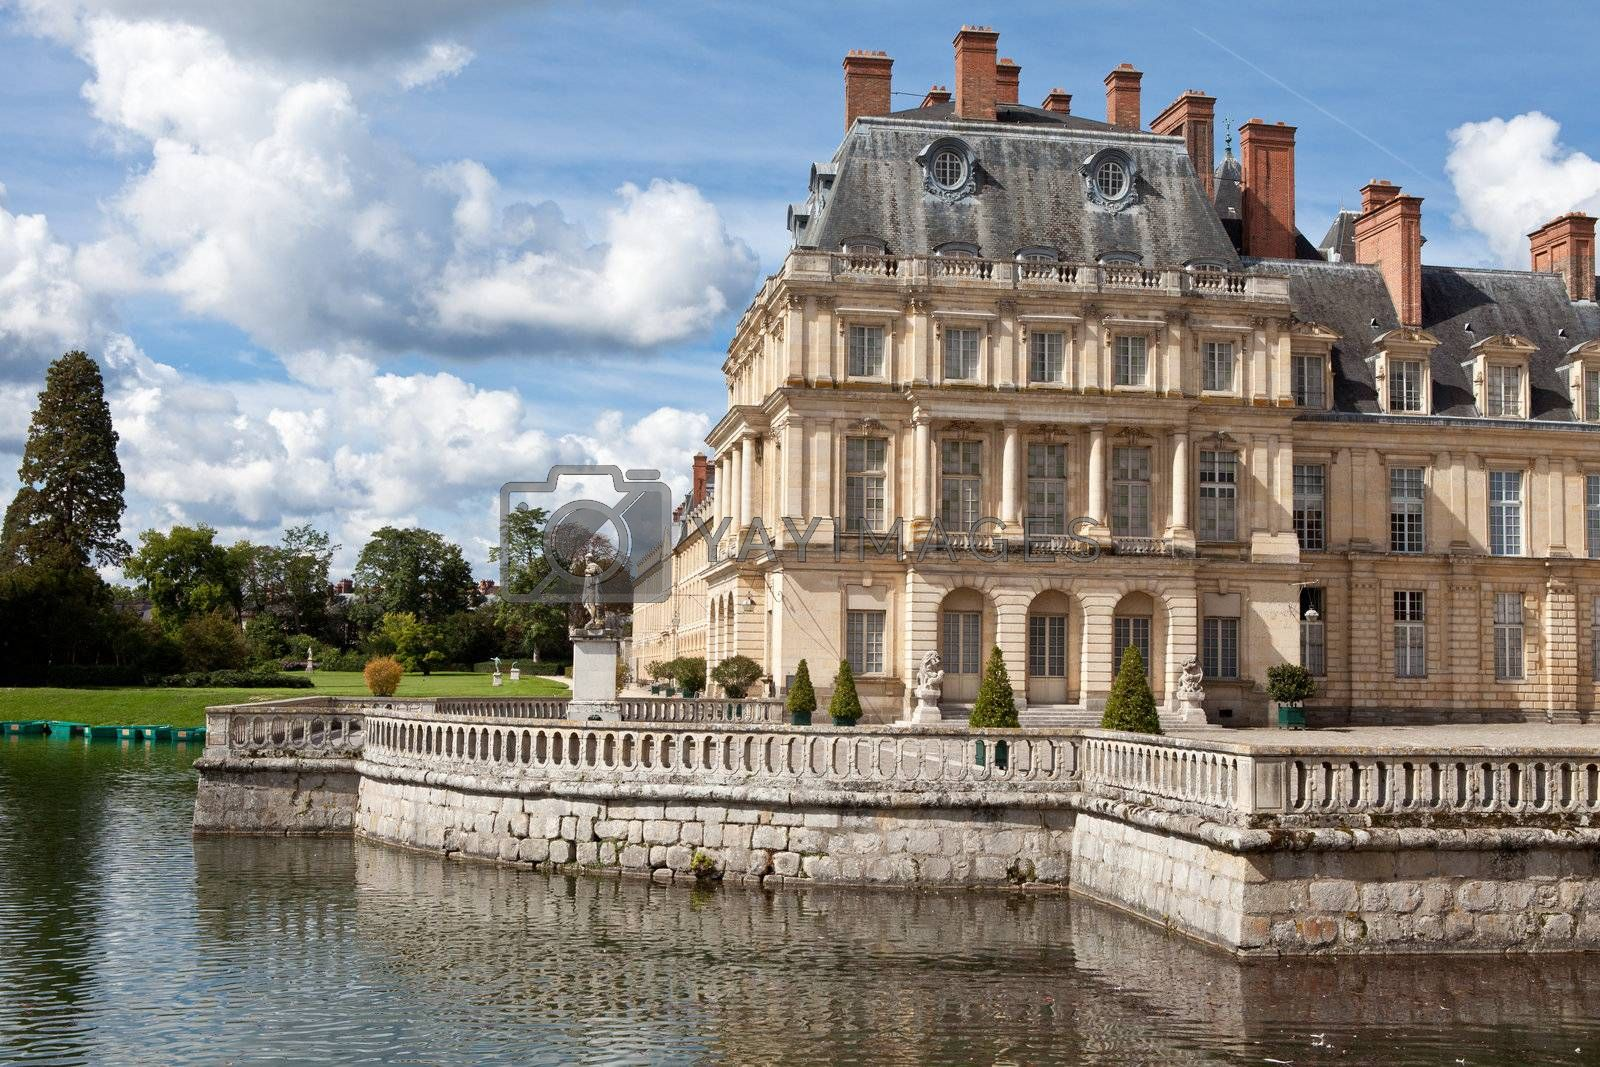 Medieval royal castle Fontainbleau and lake near Paris in France by SergeyAK